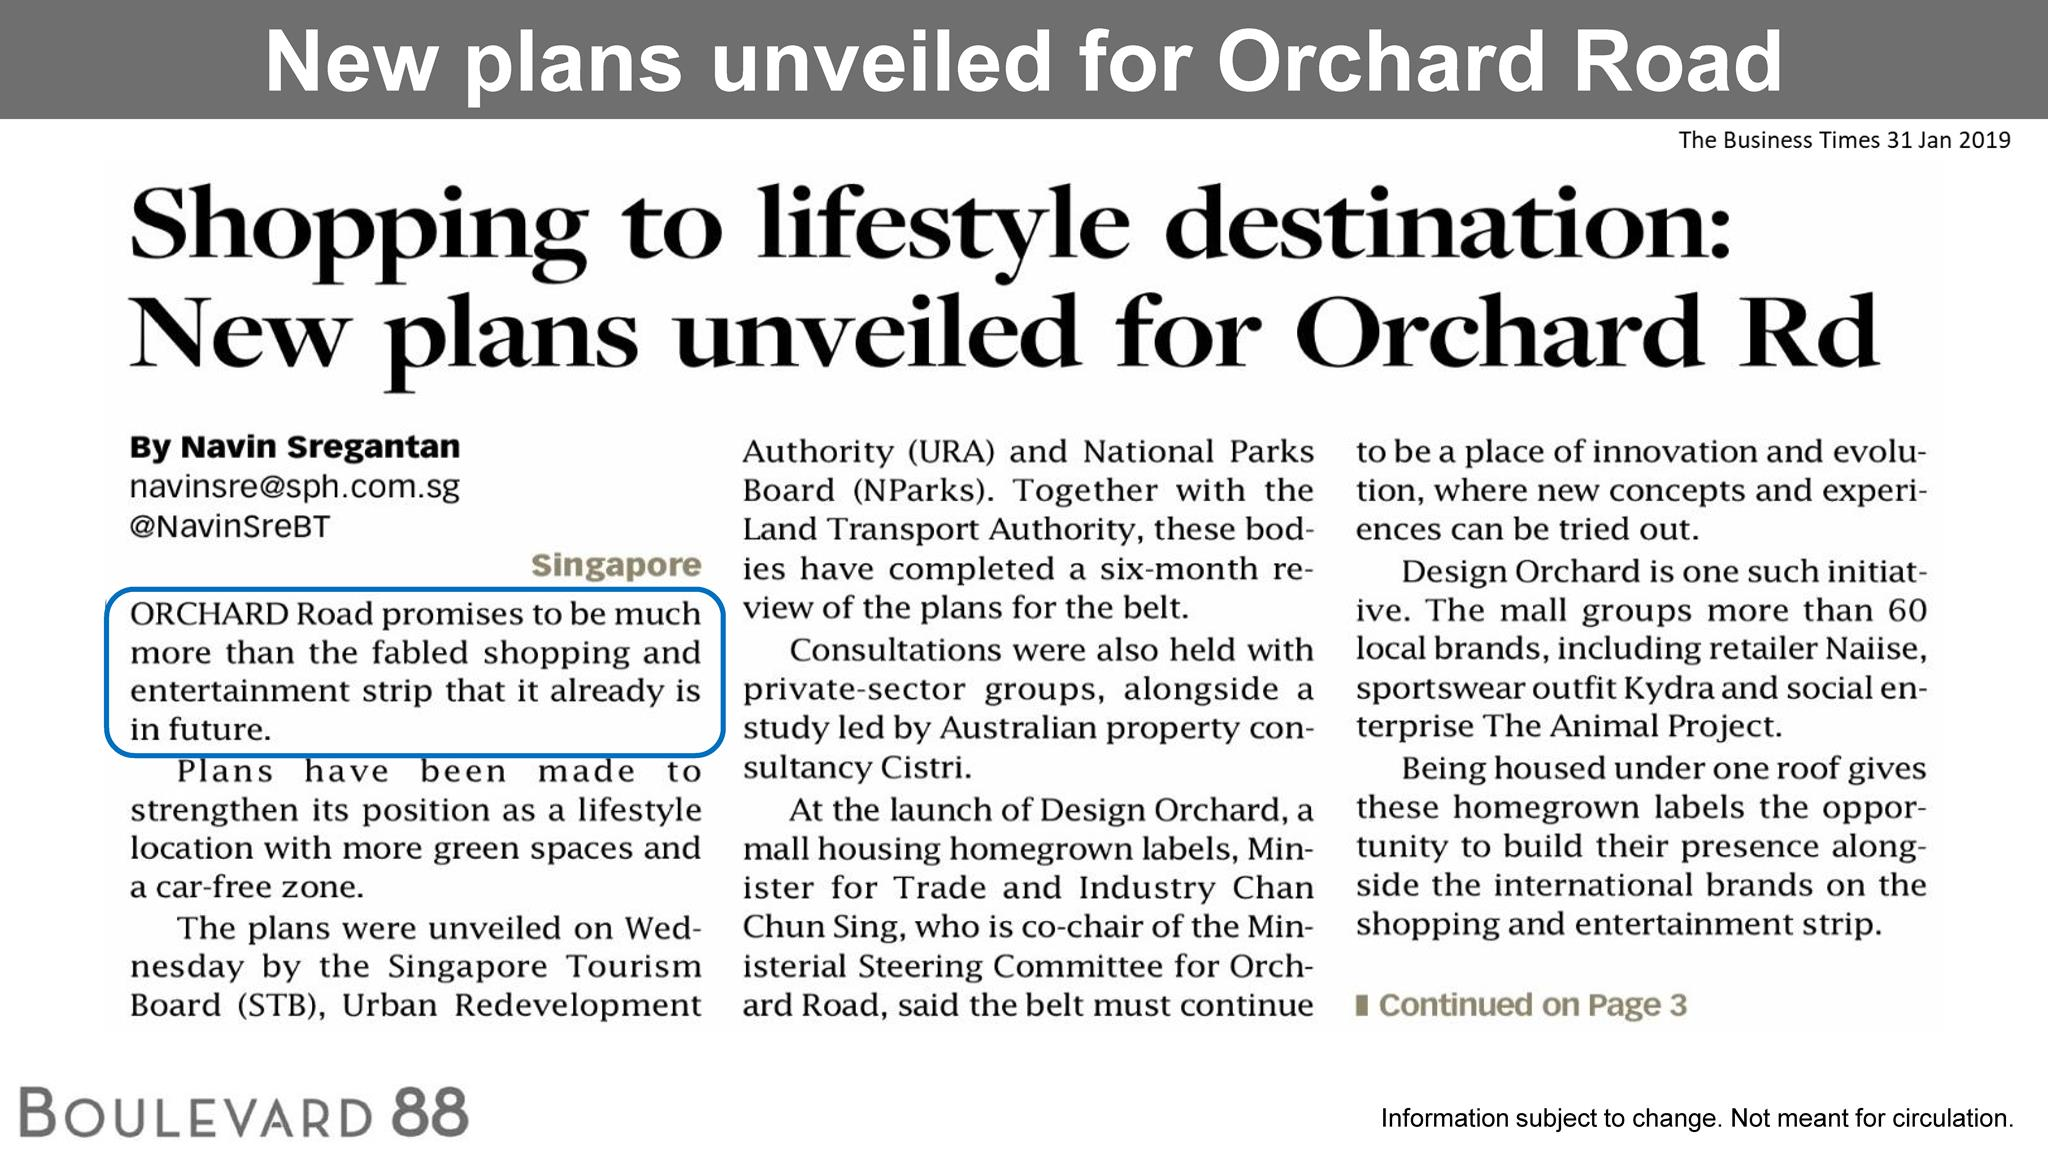 Shopping to lifestyle destination: New plans unveiled for Orchard Rd